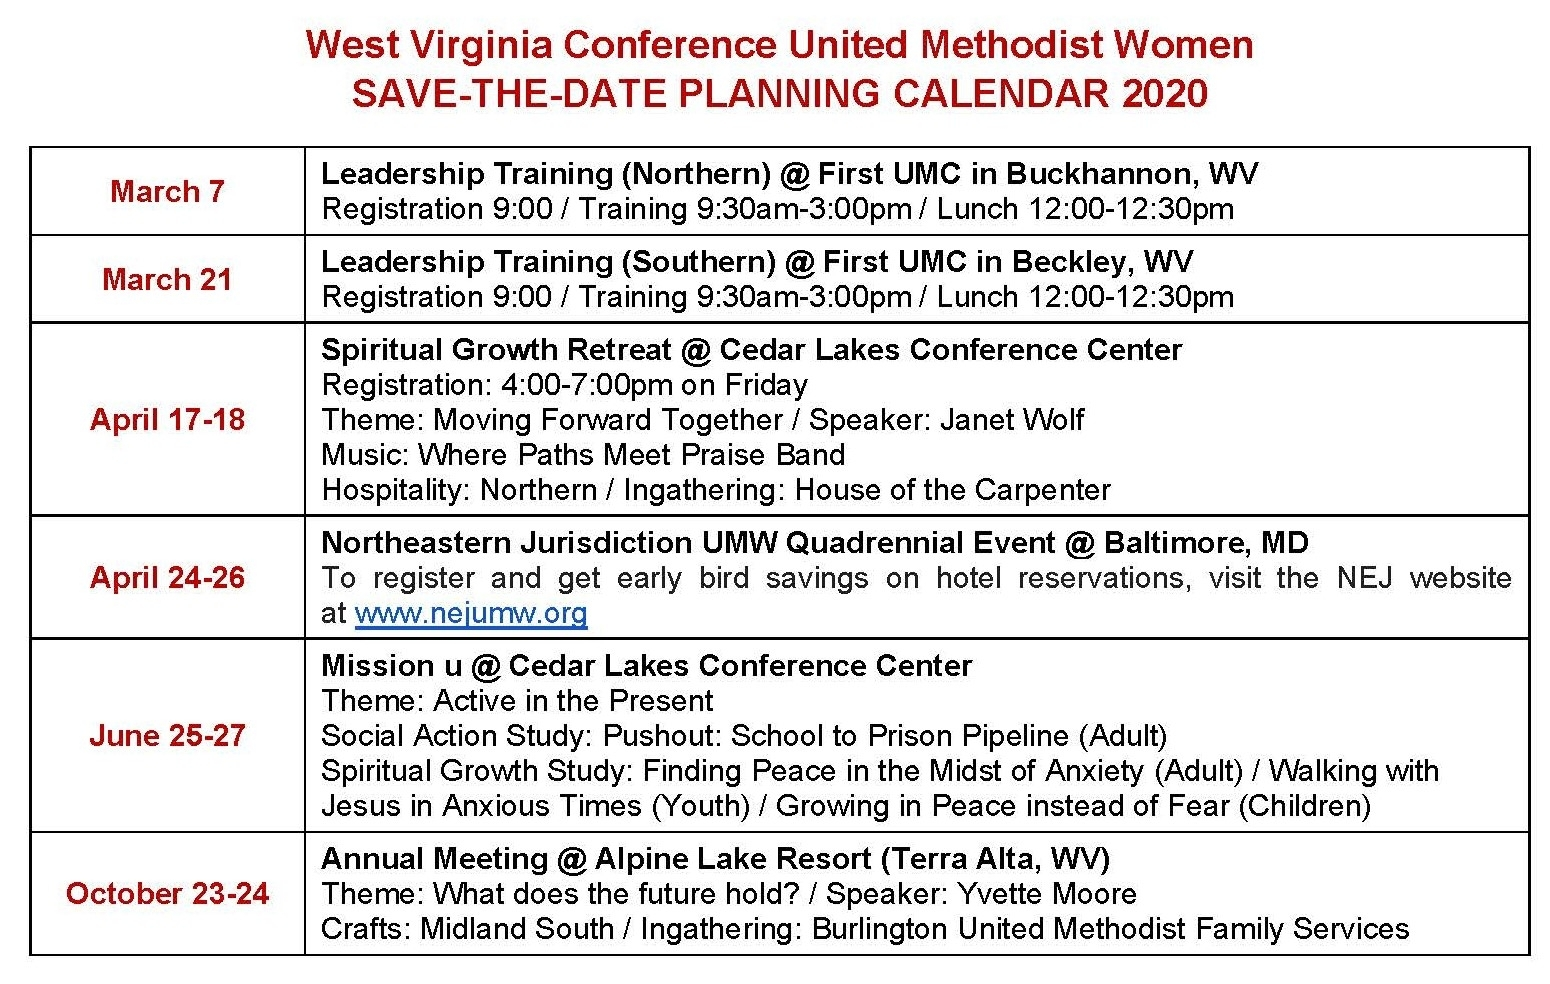 United Methodist Women (Umw) | West Virginia Conference Of intended for Downloadable Umc Liturgical Calendar 2020